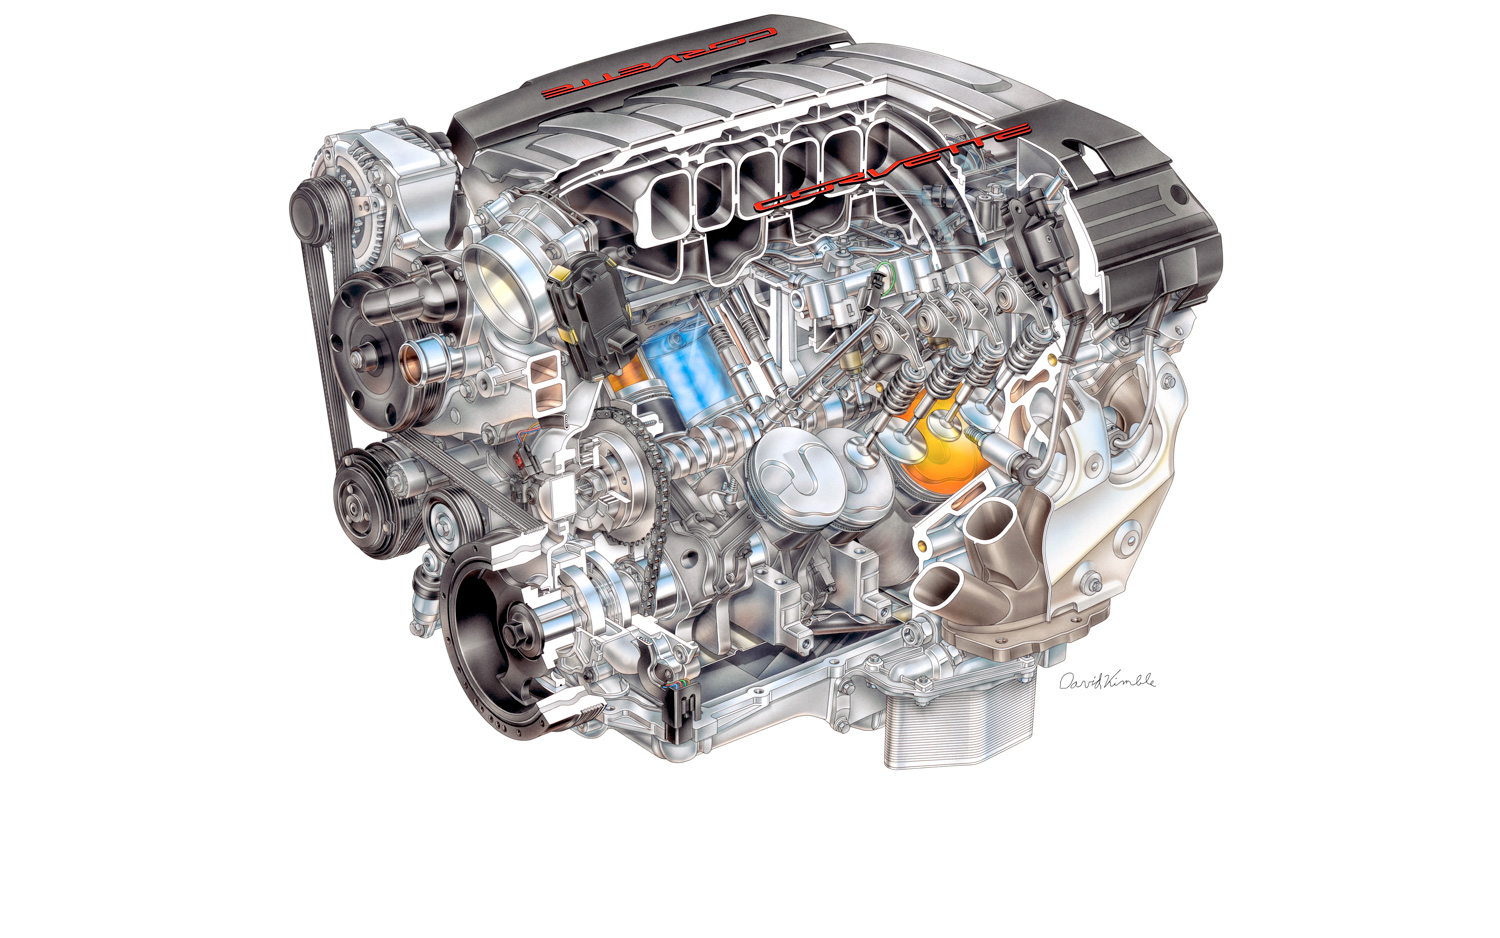 T56 Cooling Diagram Explained Wiring Diagrams Harness Lt1 Trusted 6 Speed Gm Engine Data